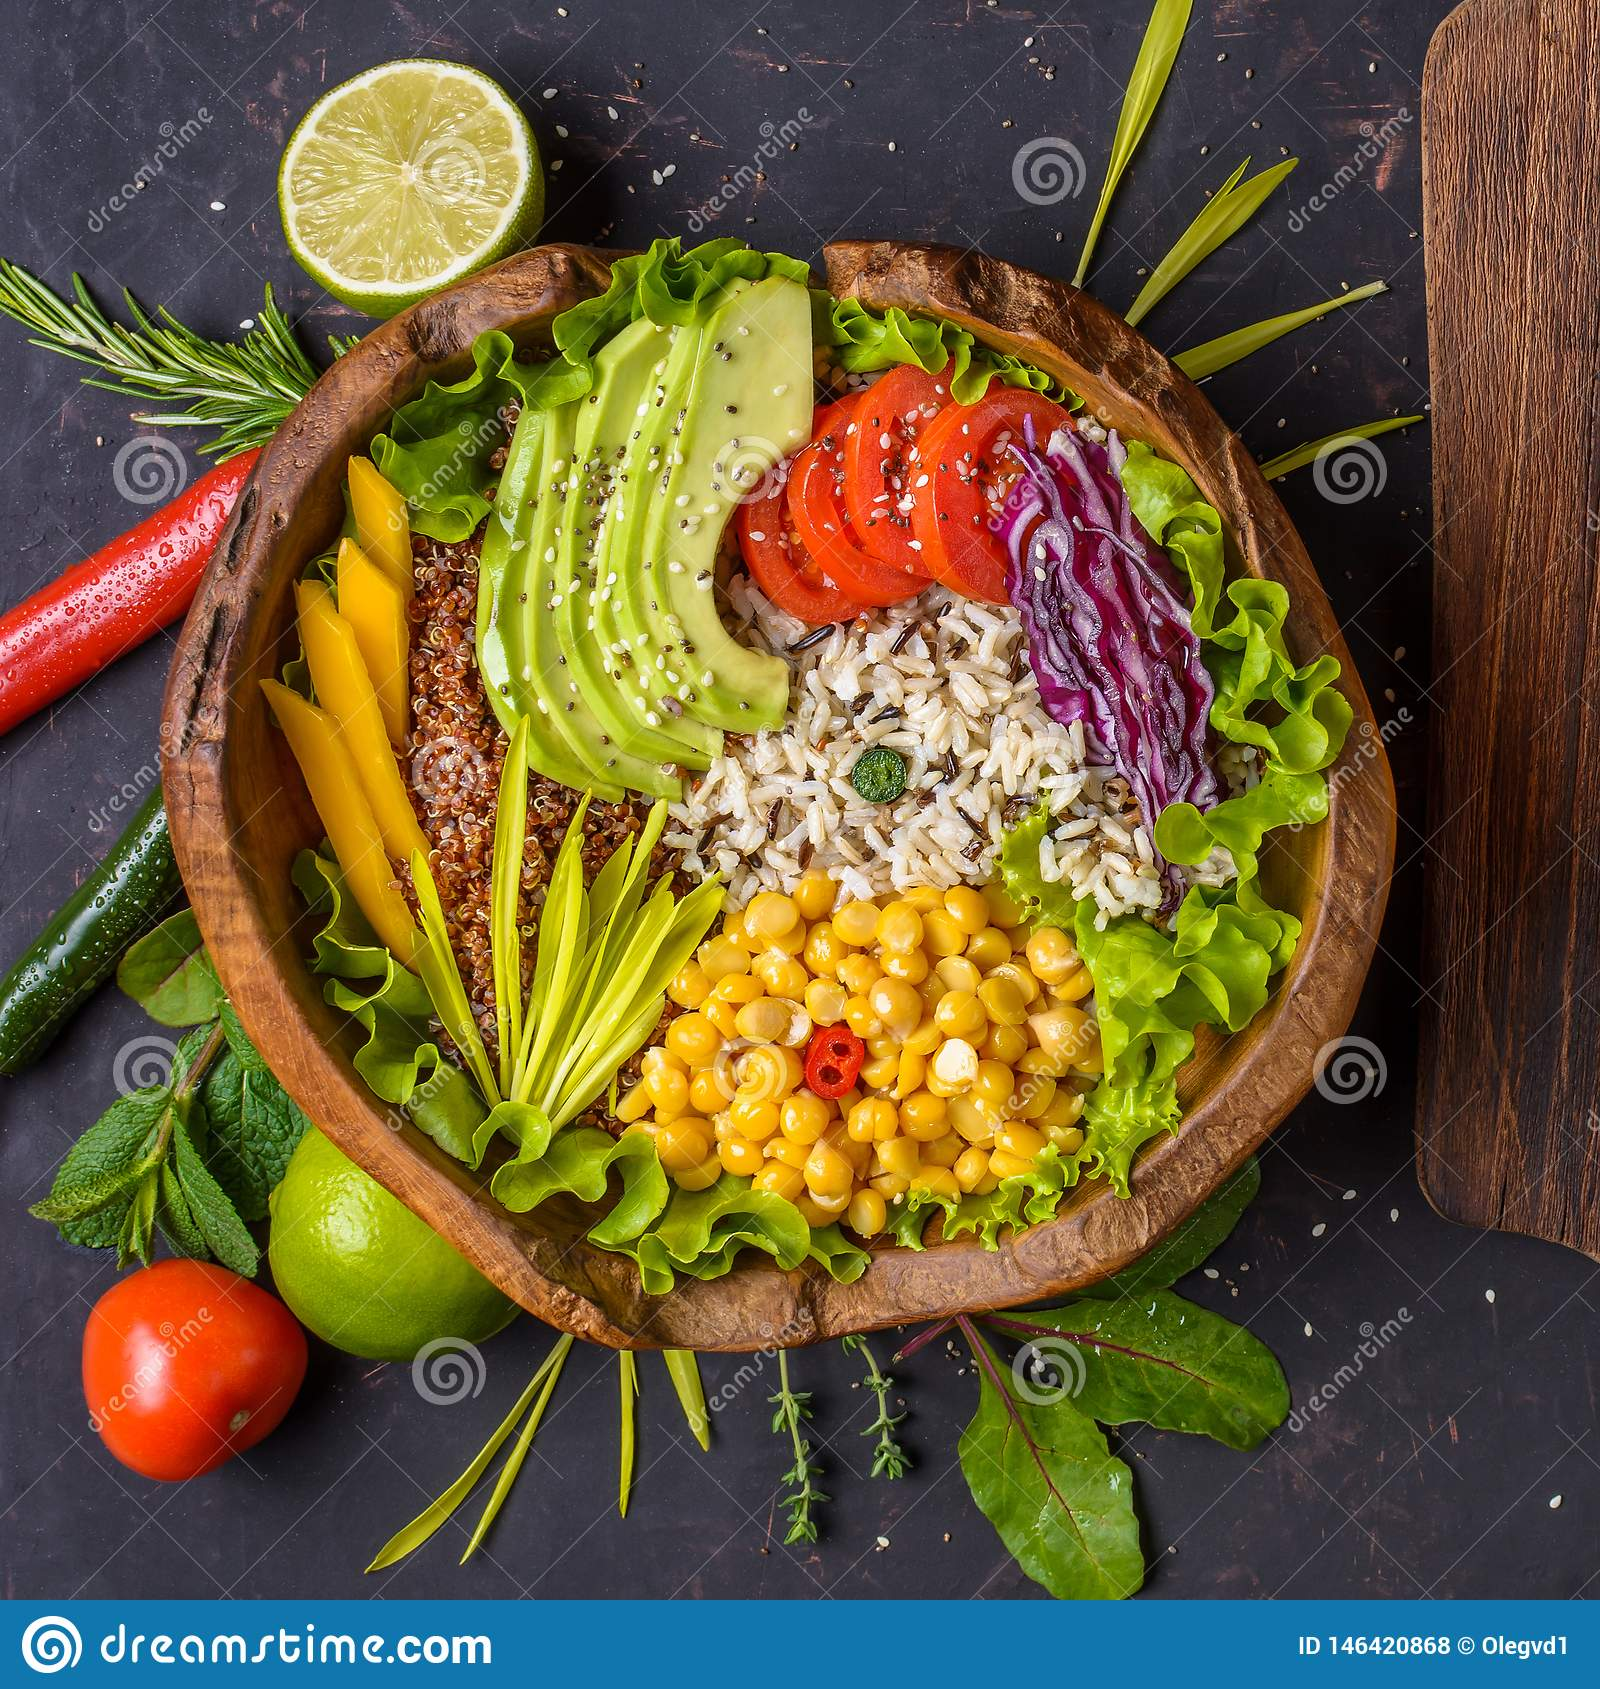 Buddha bowl with chickpea, avocado, wild rice, quinoa seeds, bell pepper, tomatoes, greens, cabbage, lettuce on shabby dark stone